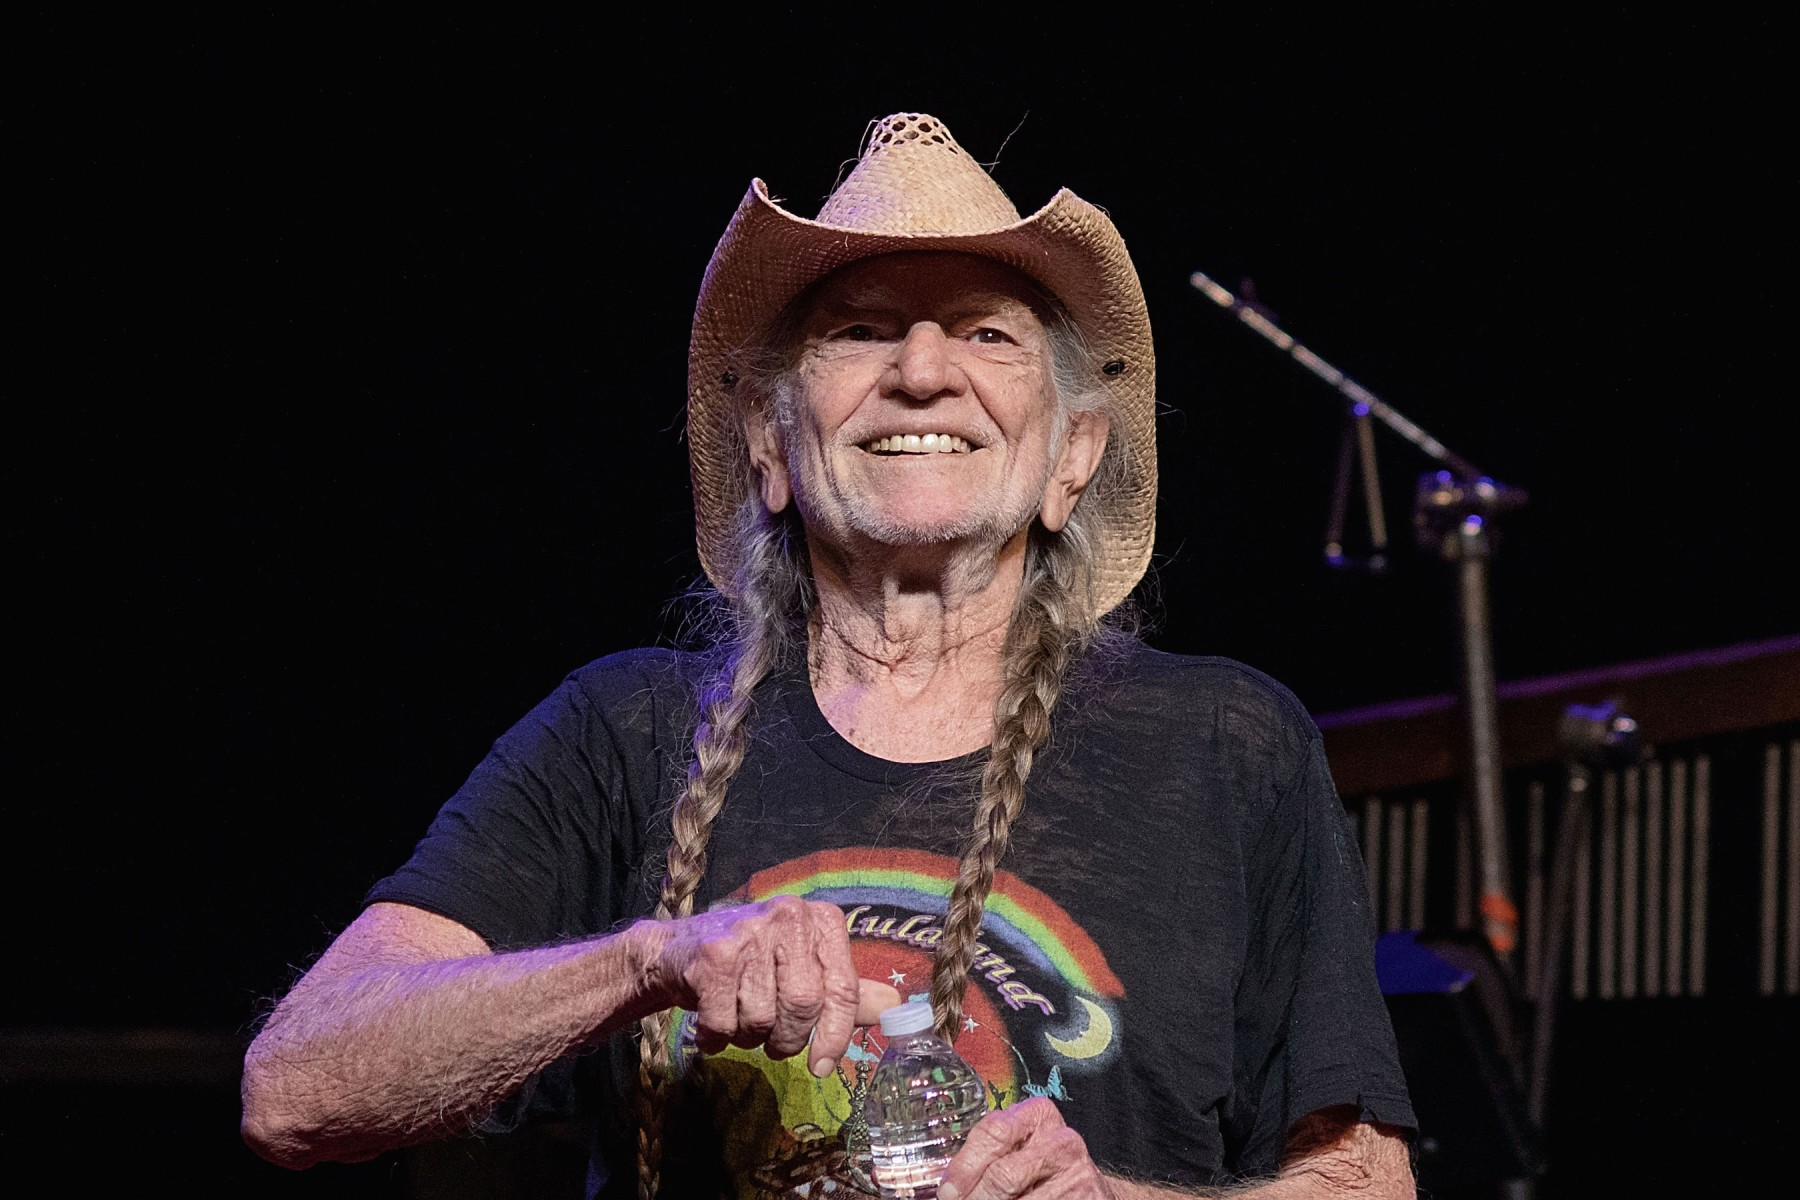 Singer-songwriter Willie Nelson performs in concert at ACL Live on December 29, 2017 in Austin, Texas. Nelson recently spoke out against the current state of immigration policy. (Photo by Rick Kern/WireImage)